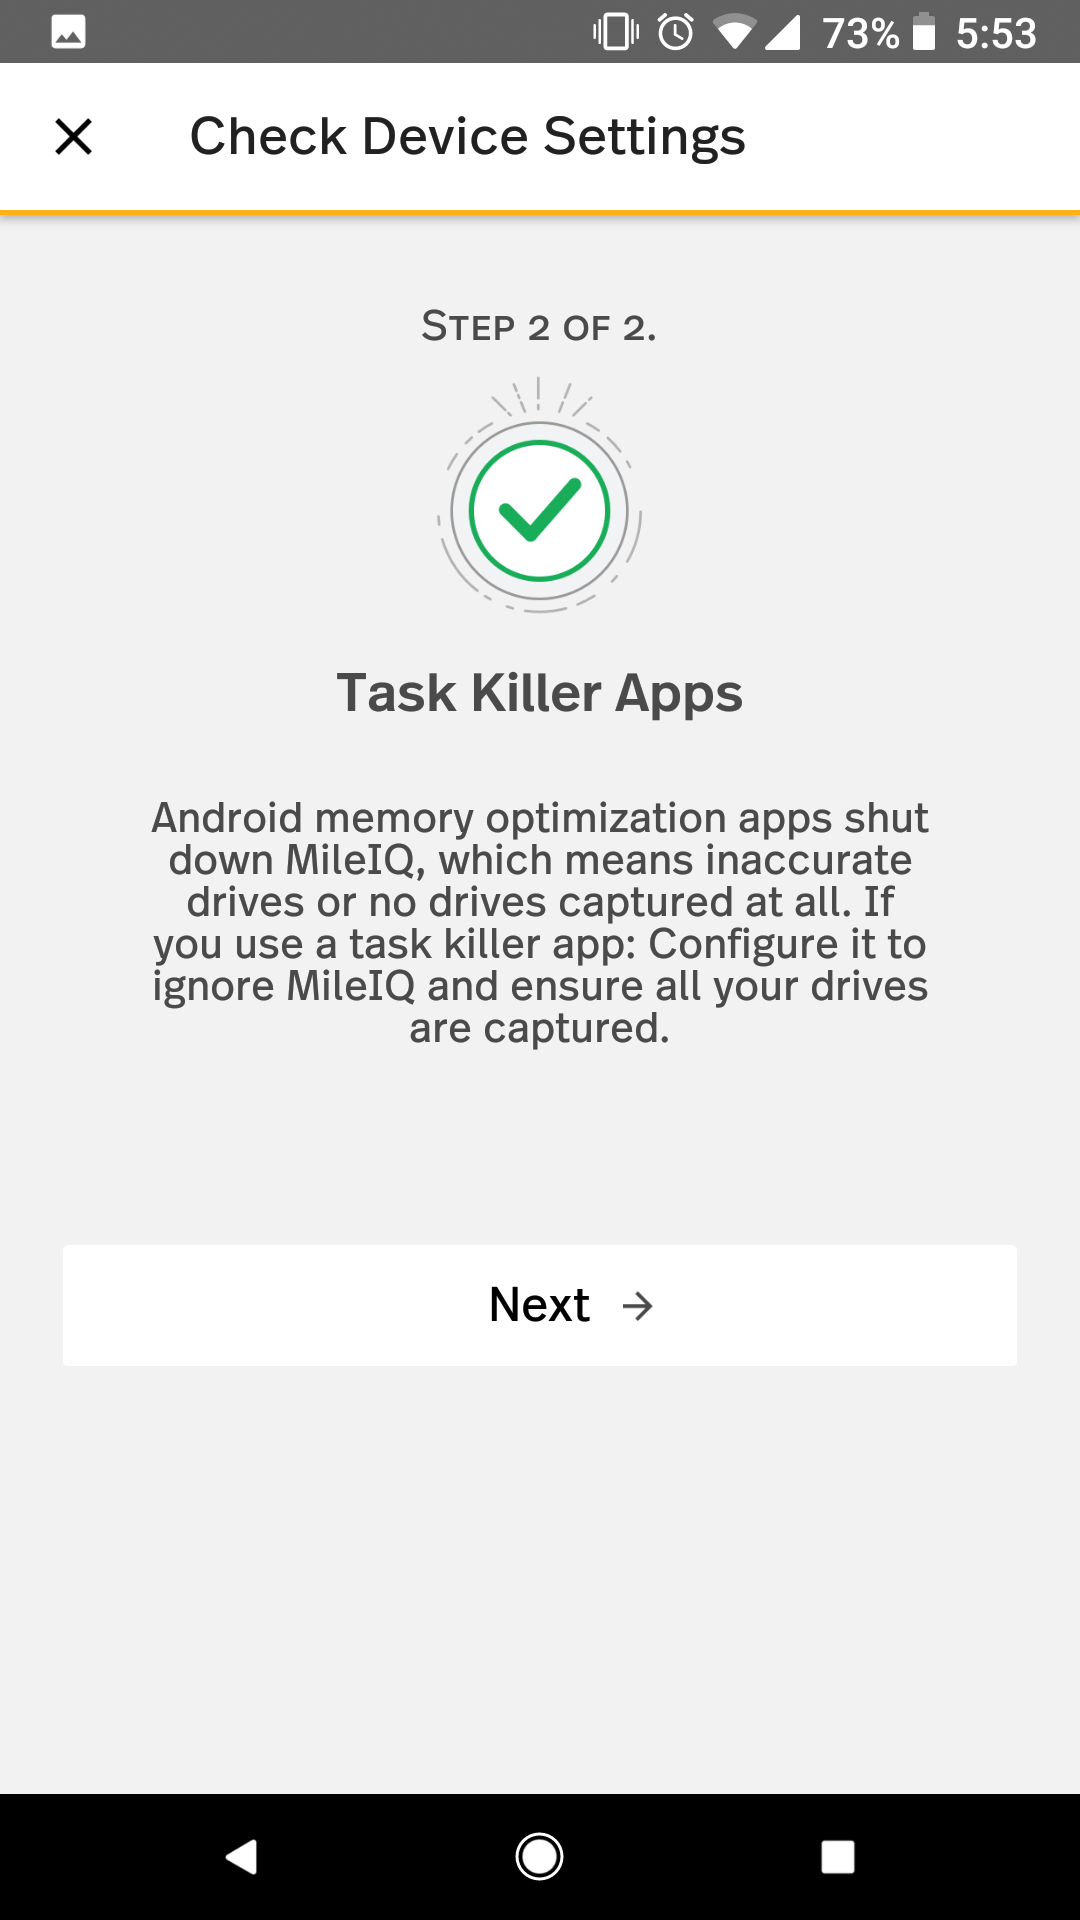 This shows the information around Task Killer Apps that can cause inconsistent drive detection